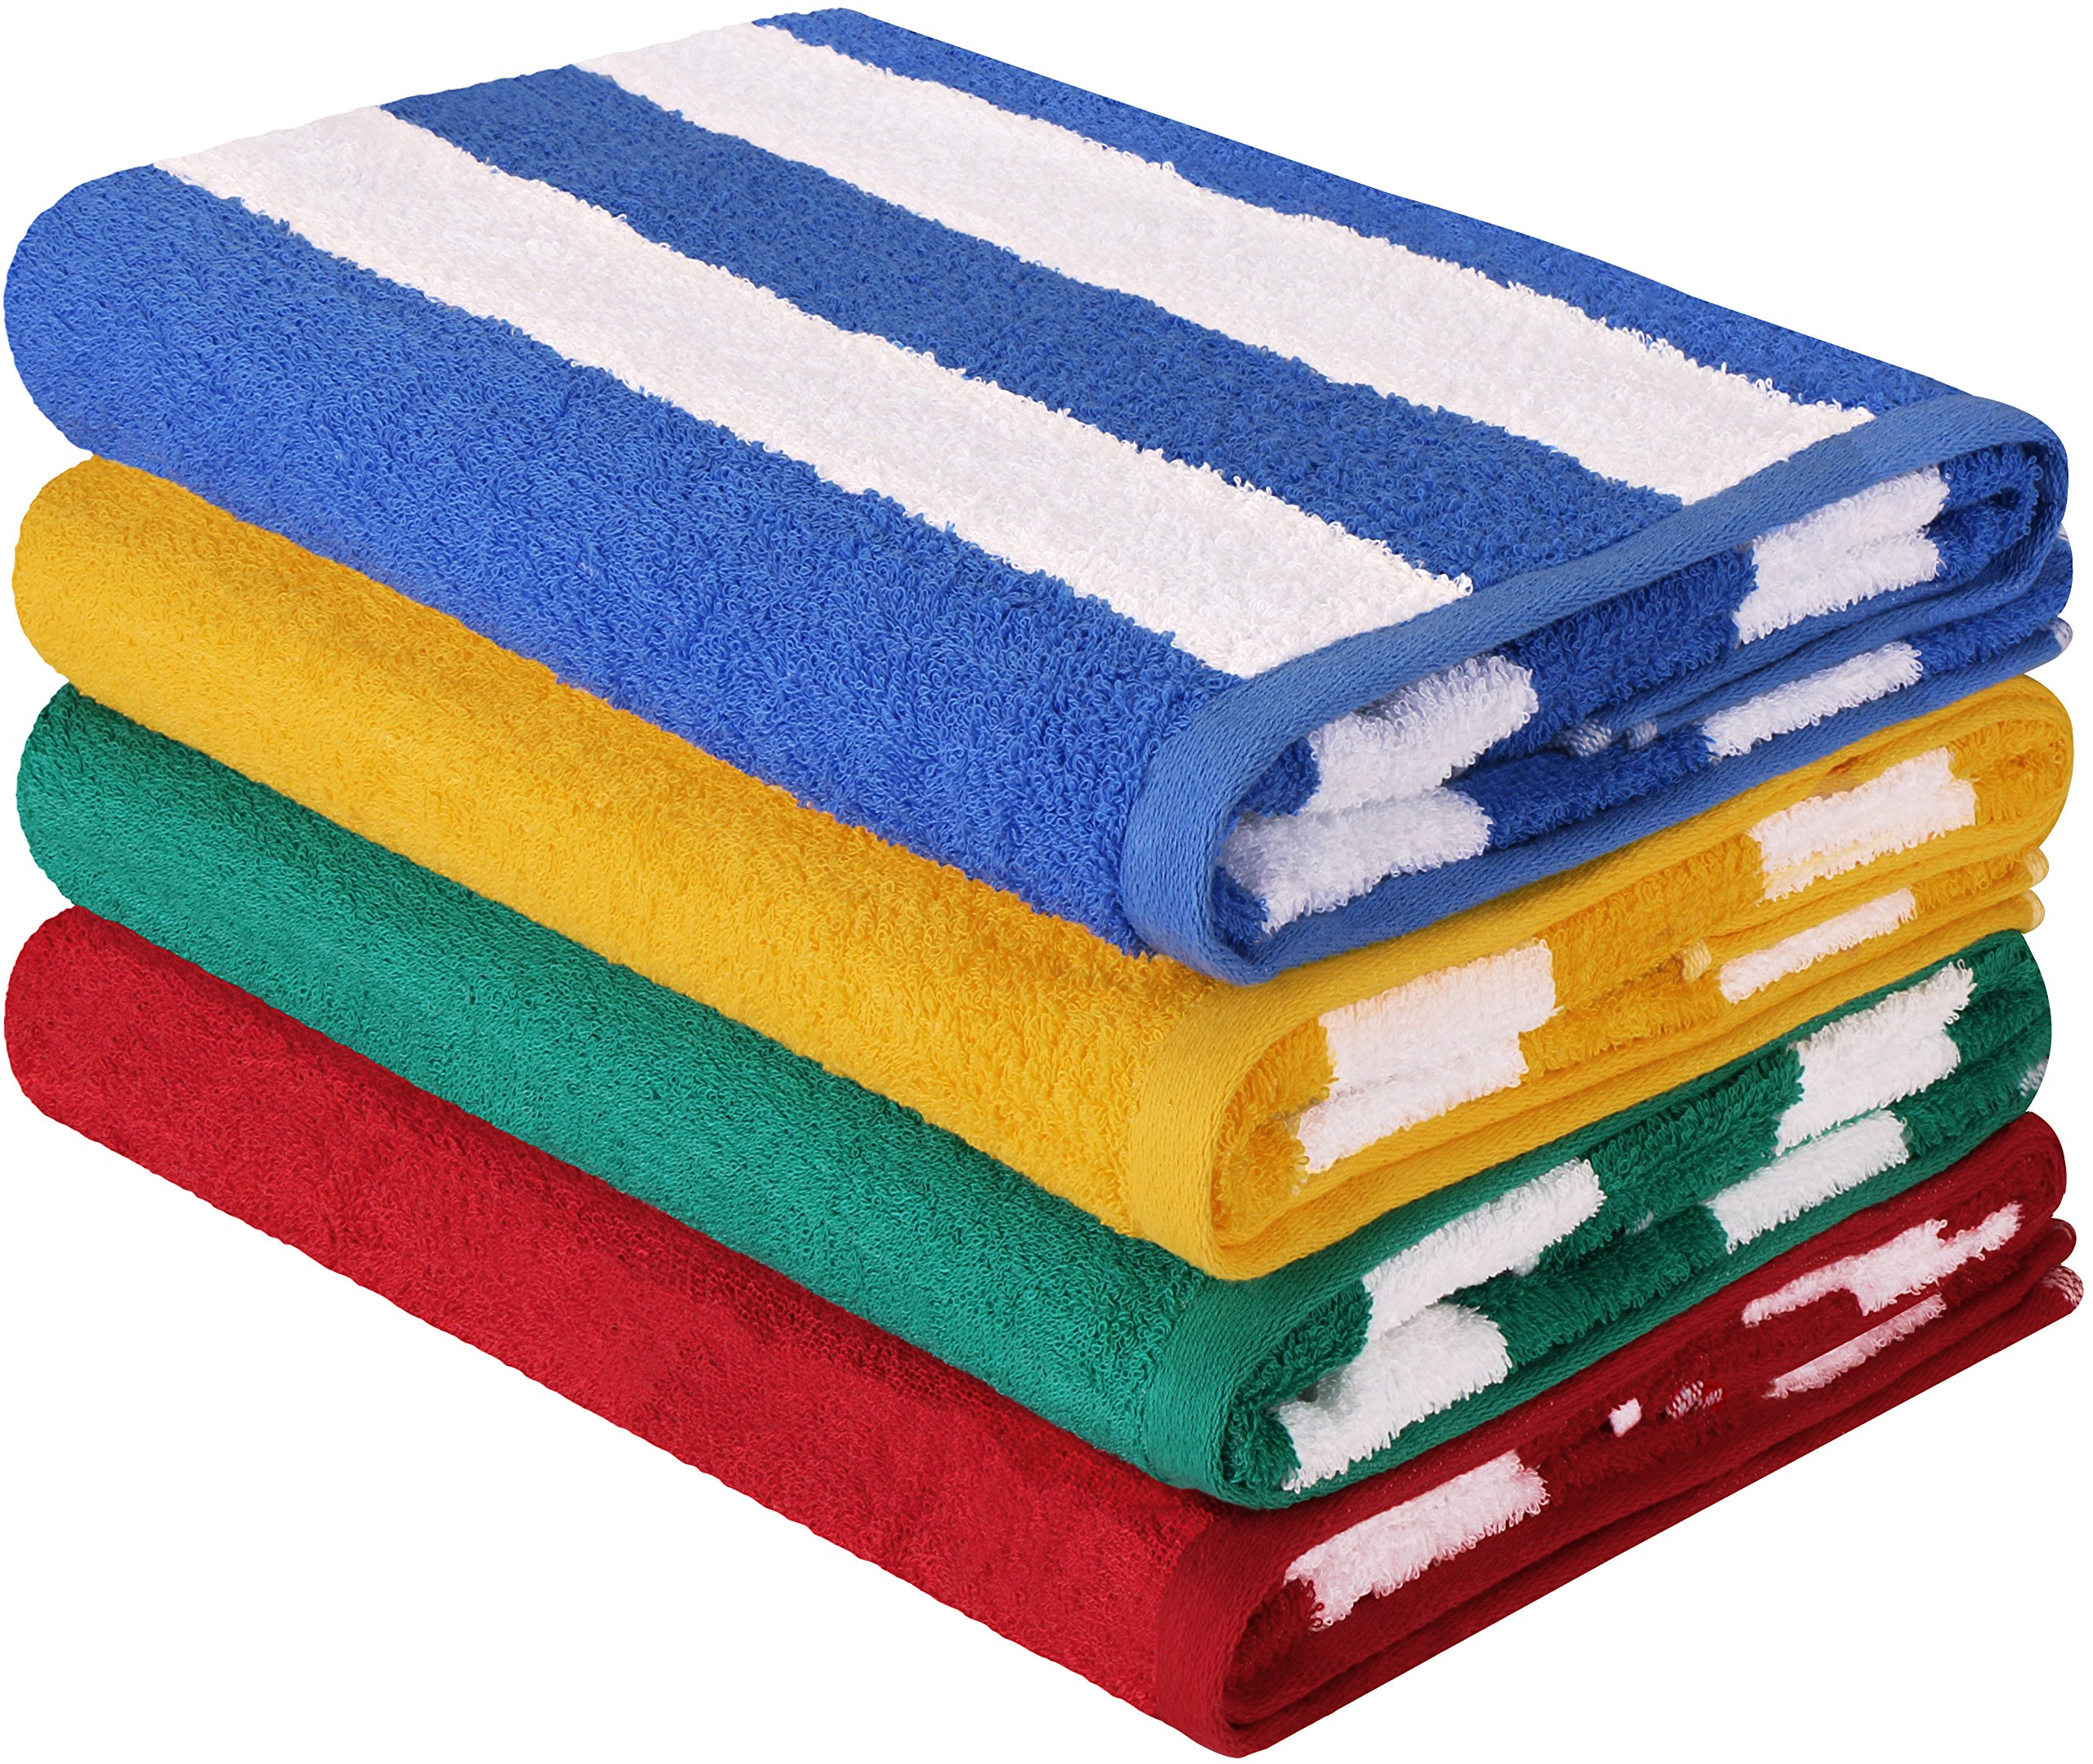 Utopia Towels Premium Quality Cabana Beach Towels - Pack of 4 Cabana Stripe Pool Towels (30 x 60 Inches) - Multi Color Towels with High Absorbency by Utopia Towels